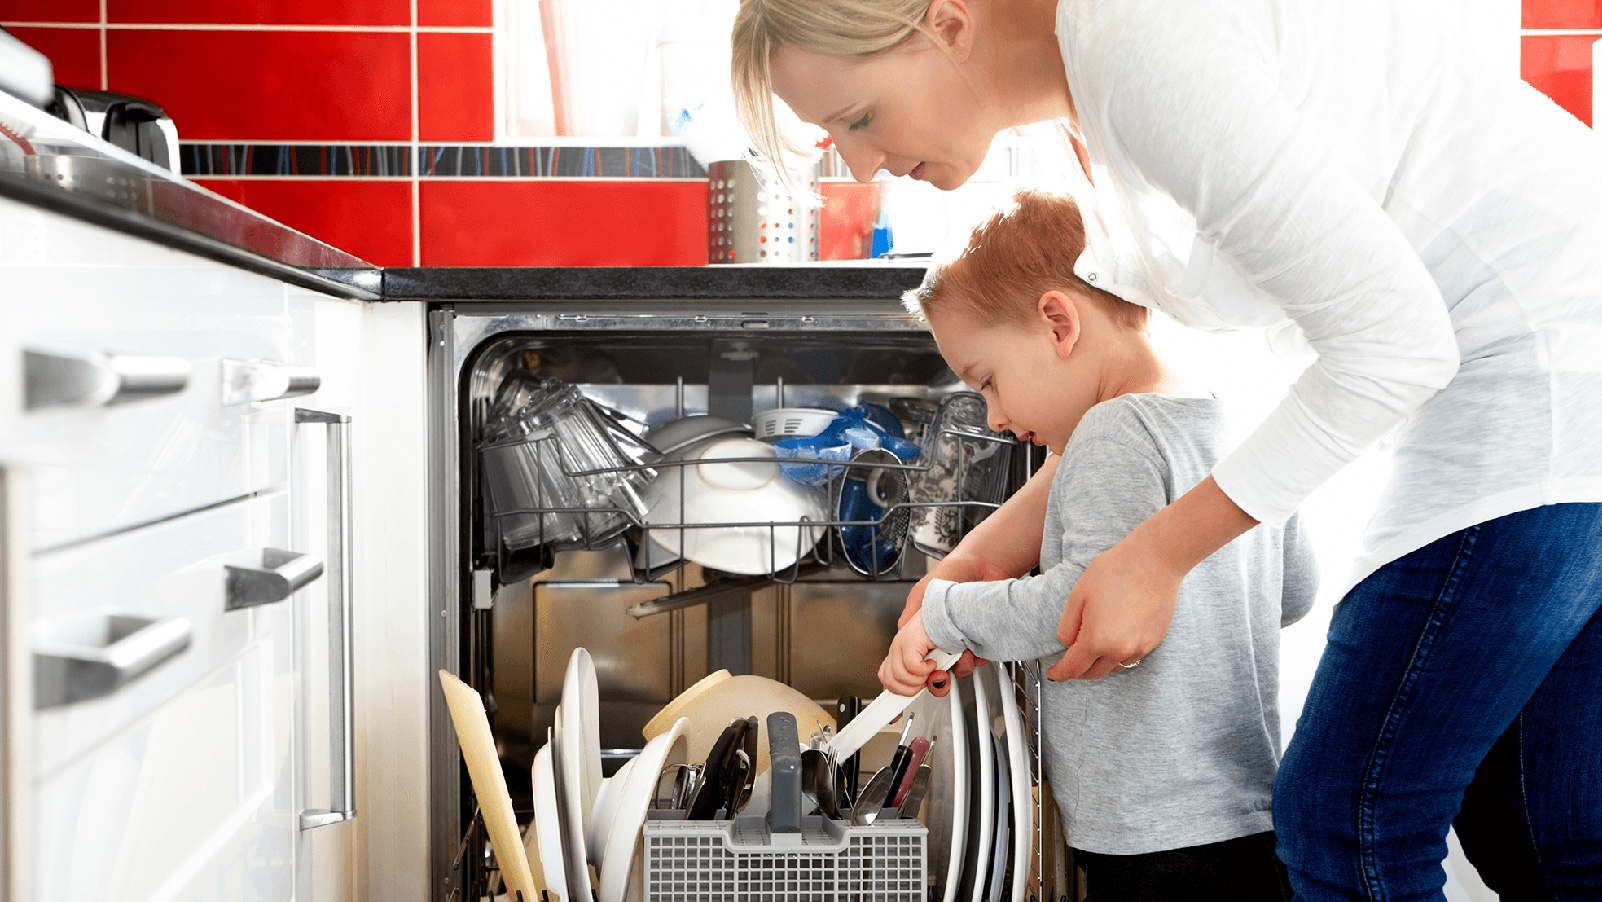 Little boy helping his mother load the dishwasher.